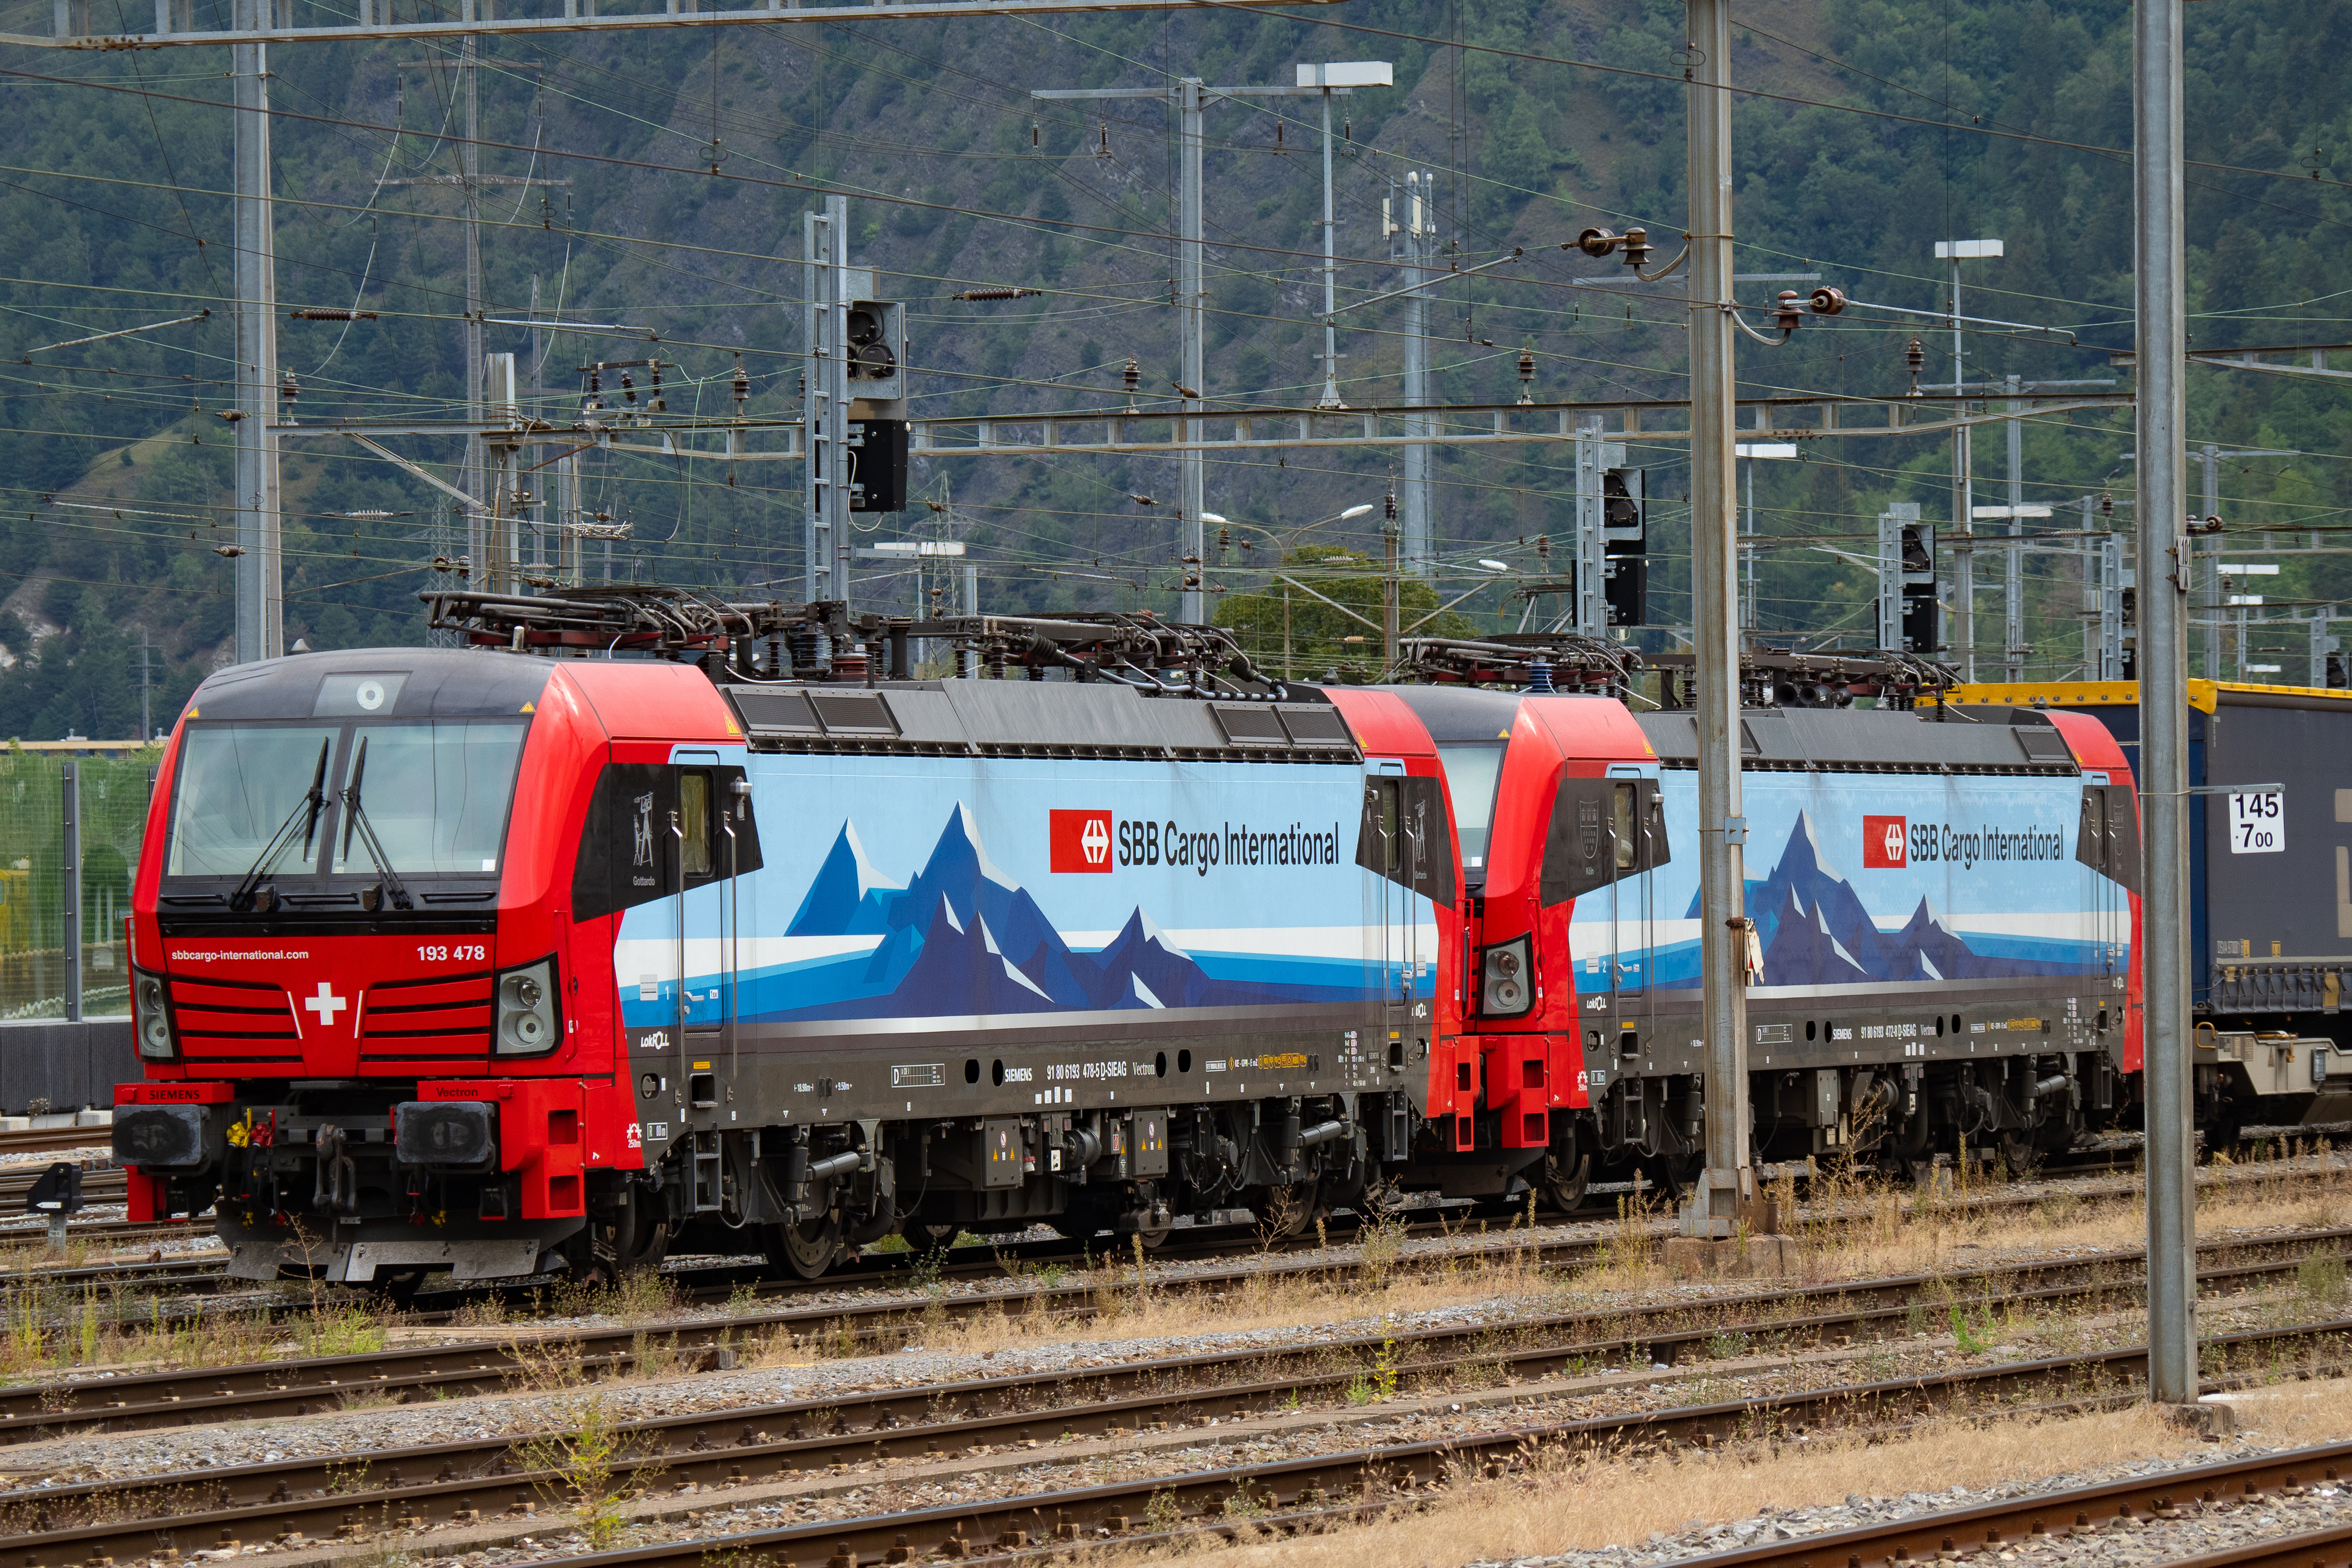 SBB Cargo locomotives